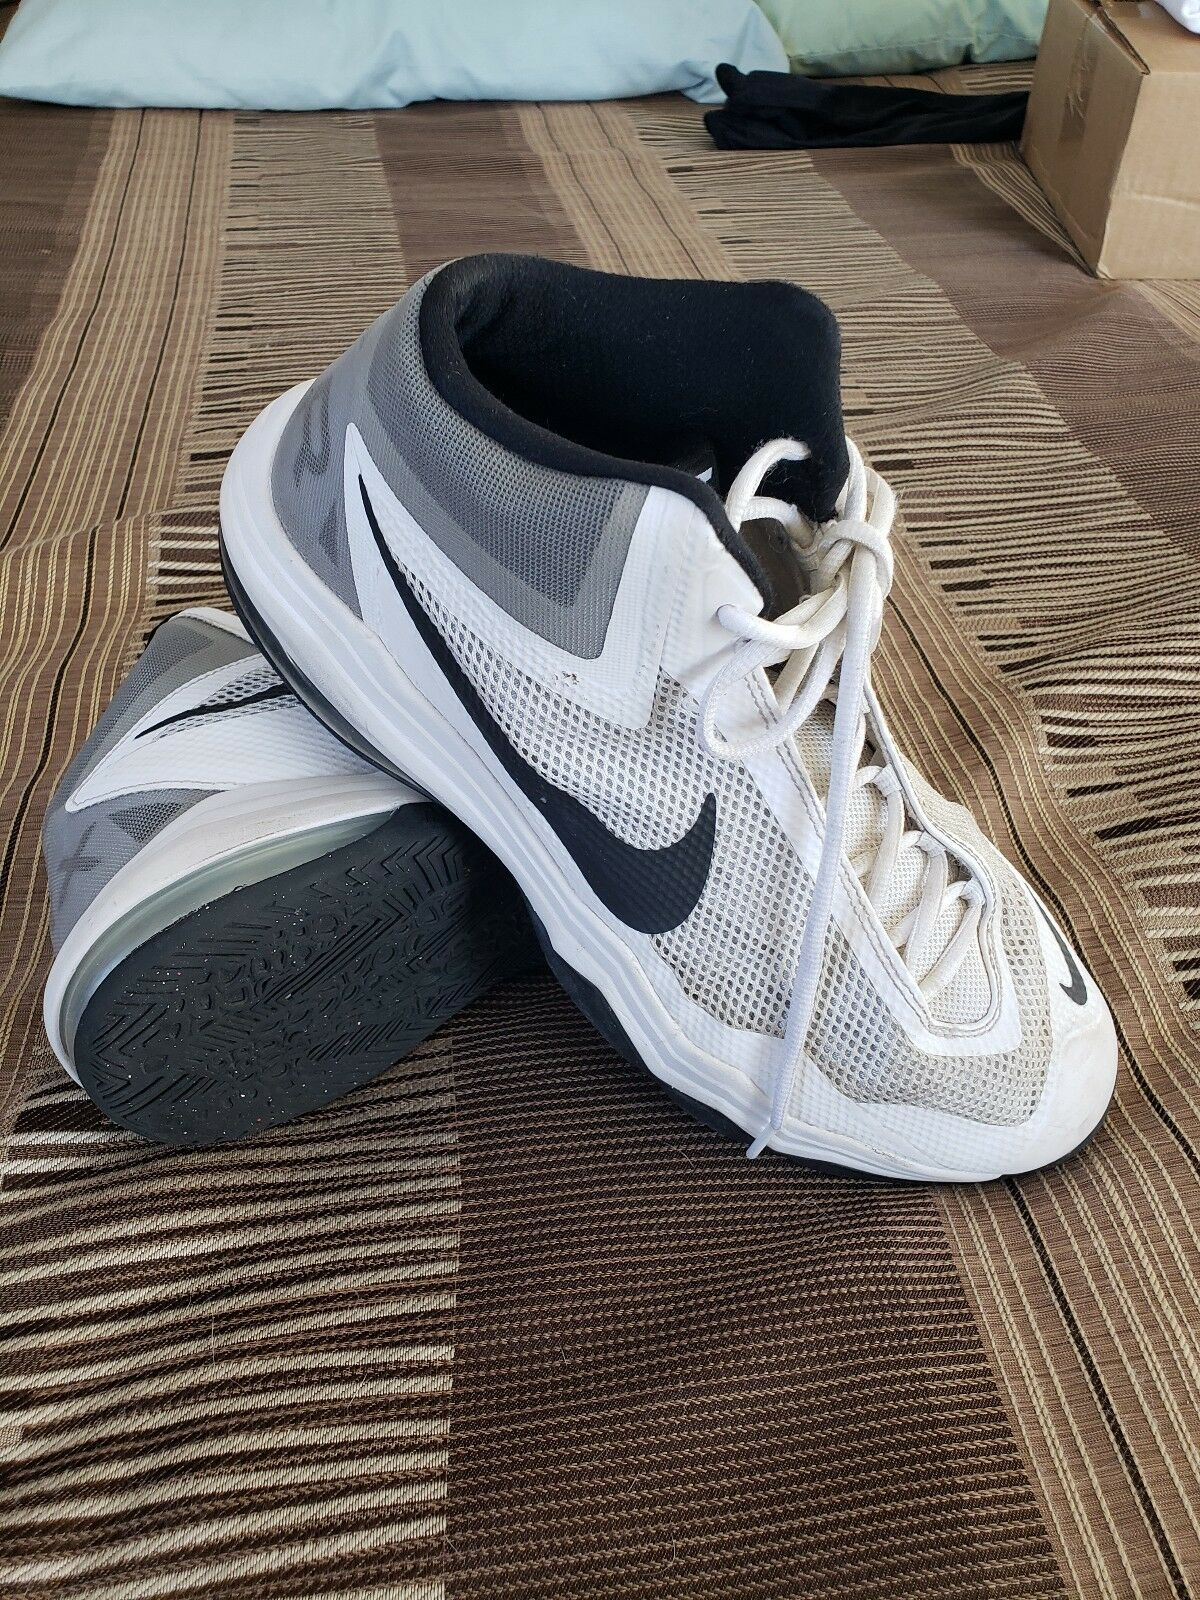 Mens  Nike Max Air Audacity athletic shoes size 12